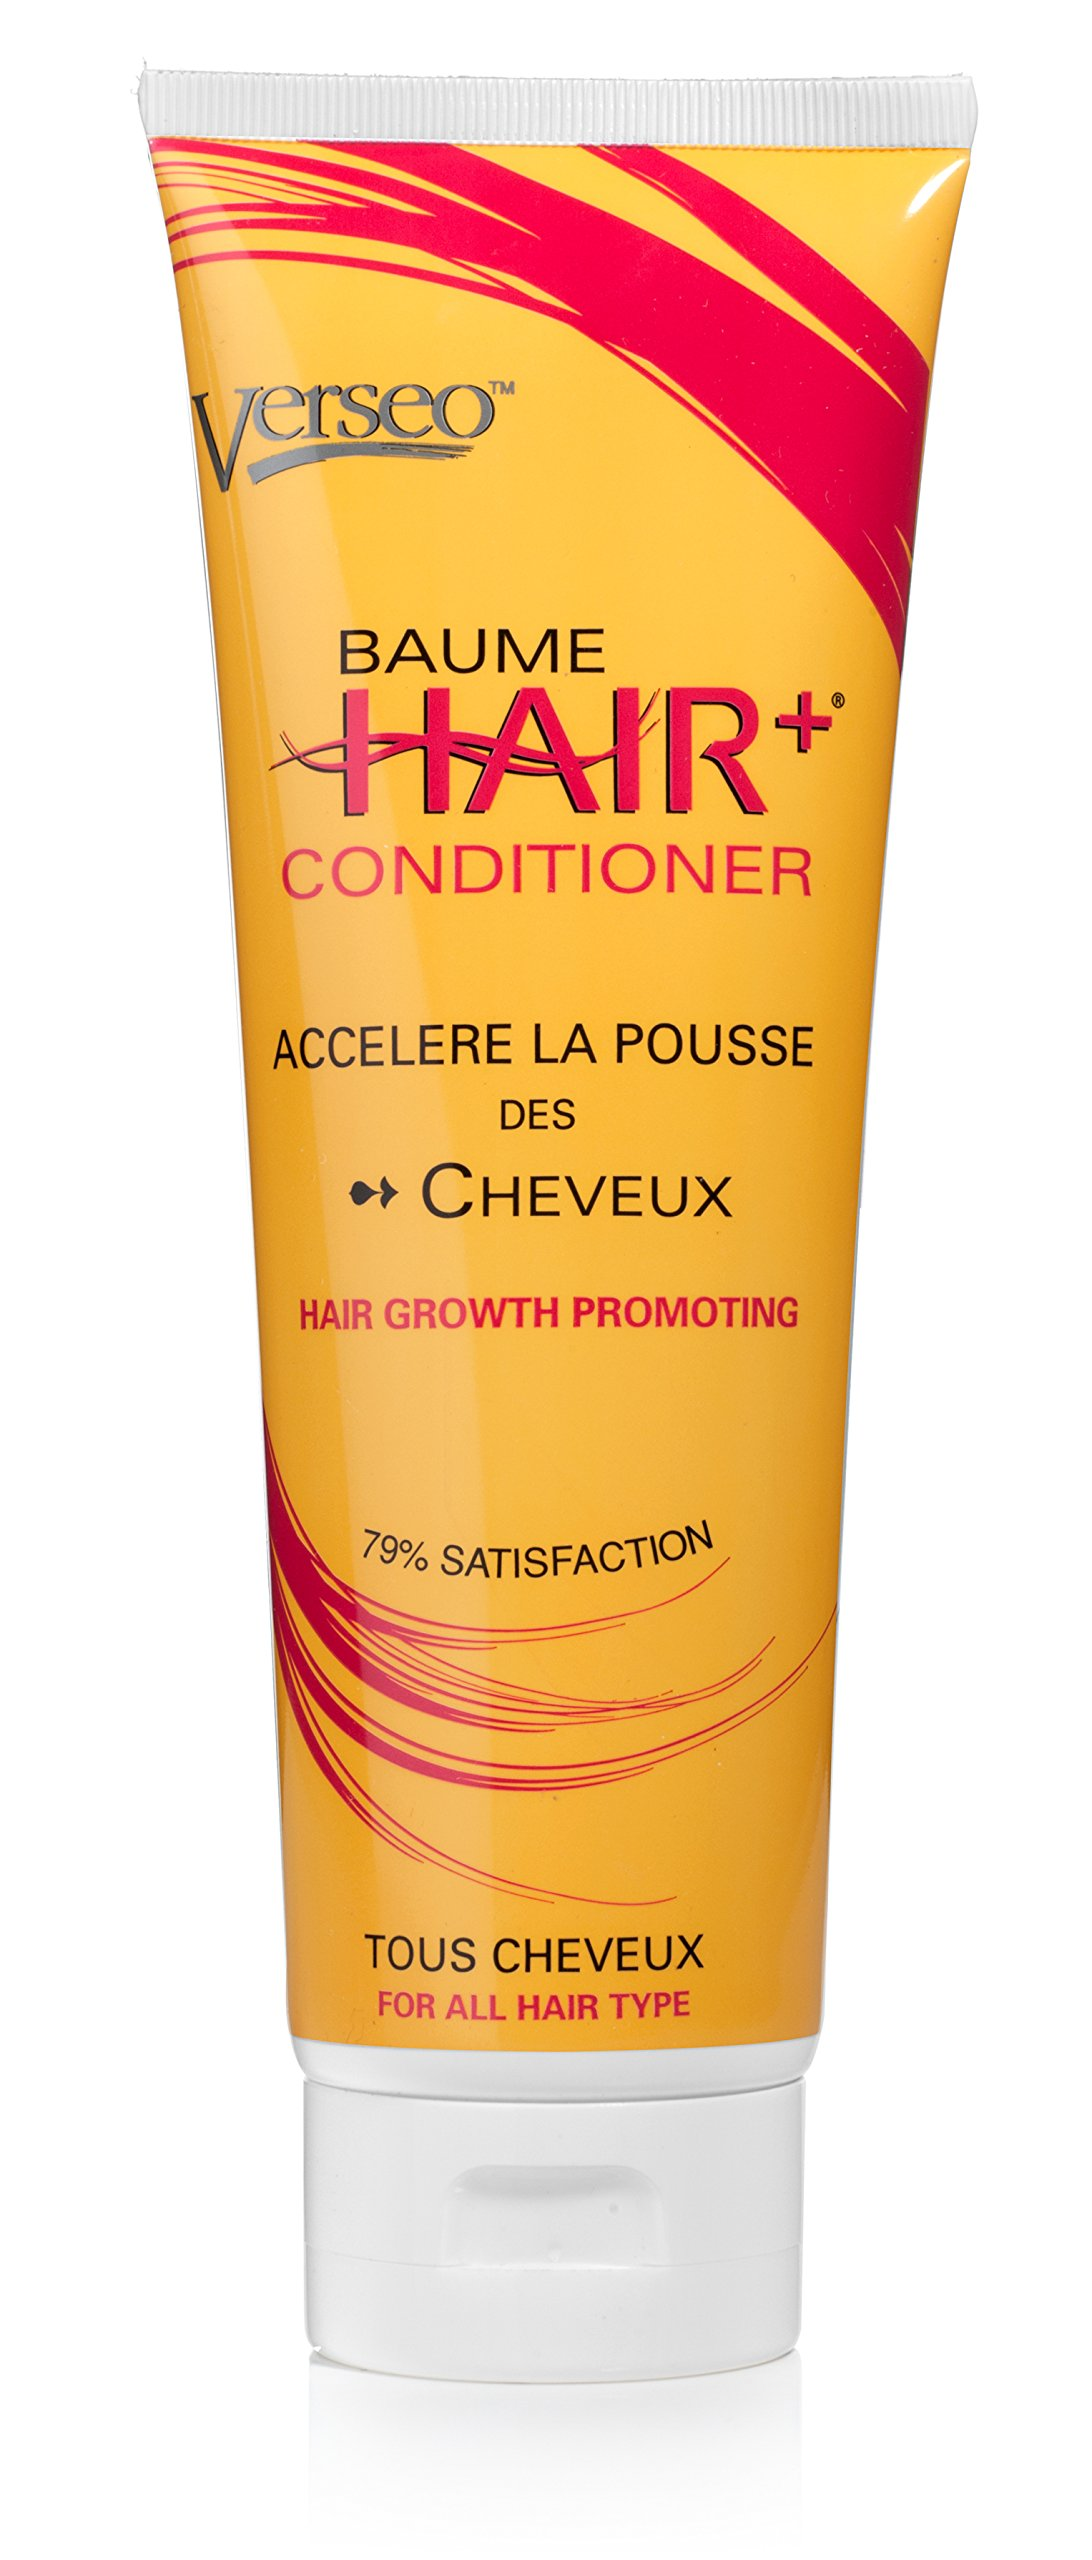 Best Hair Growth Conditioner by Verseo (Conditioner) by Verseo